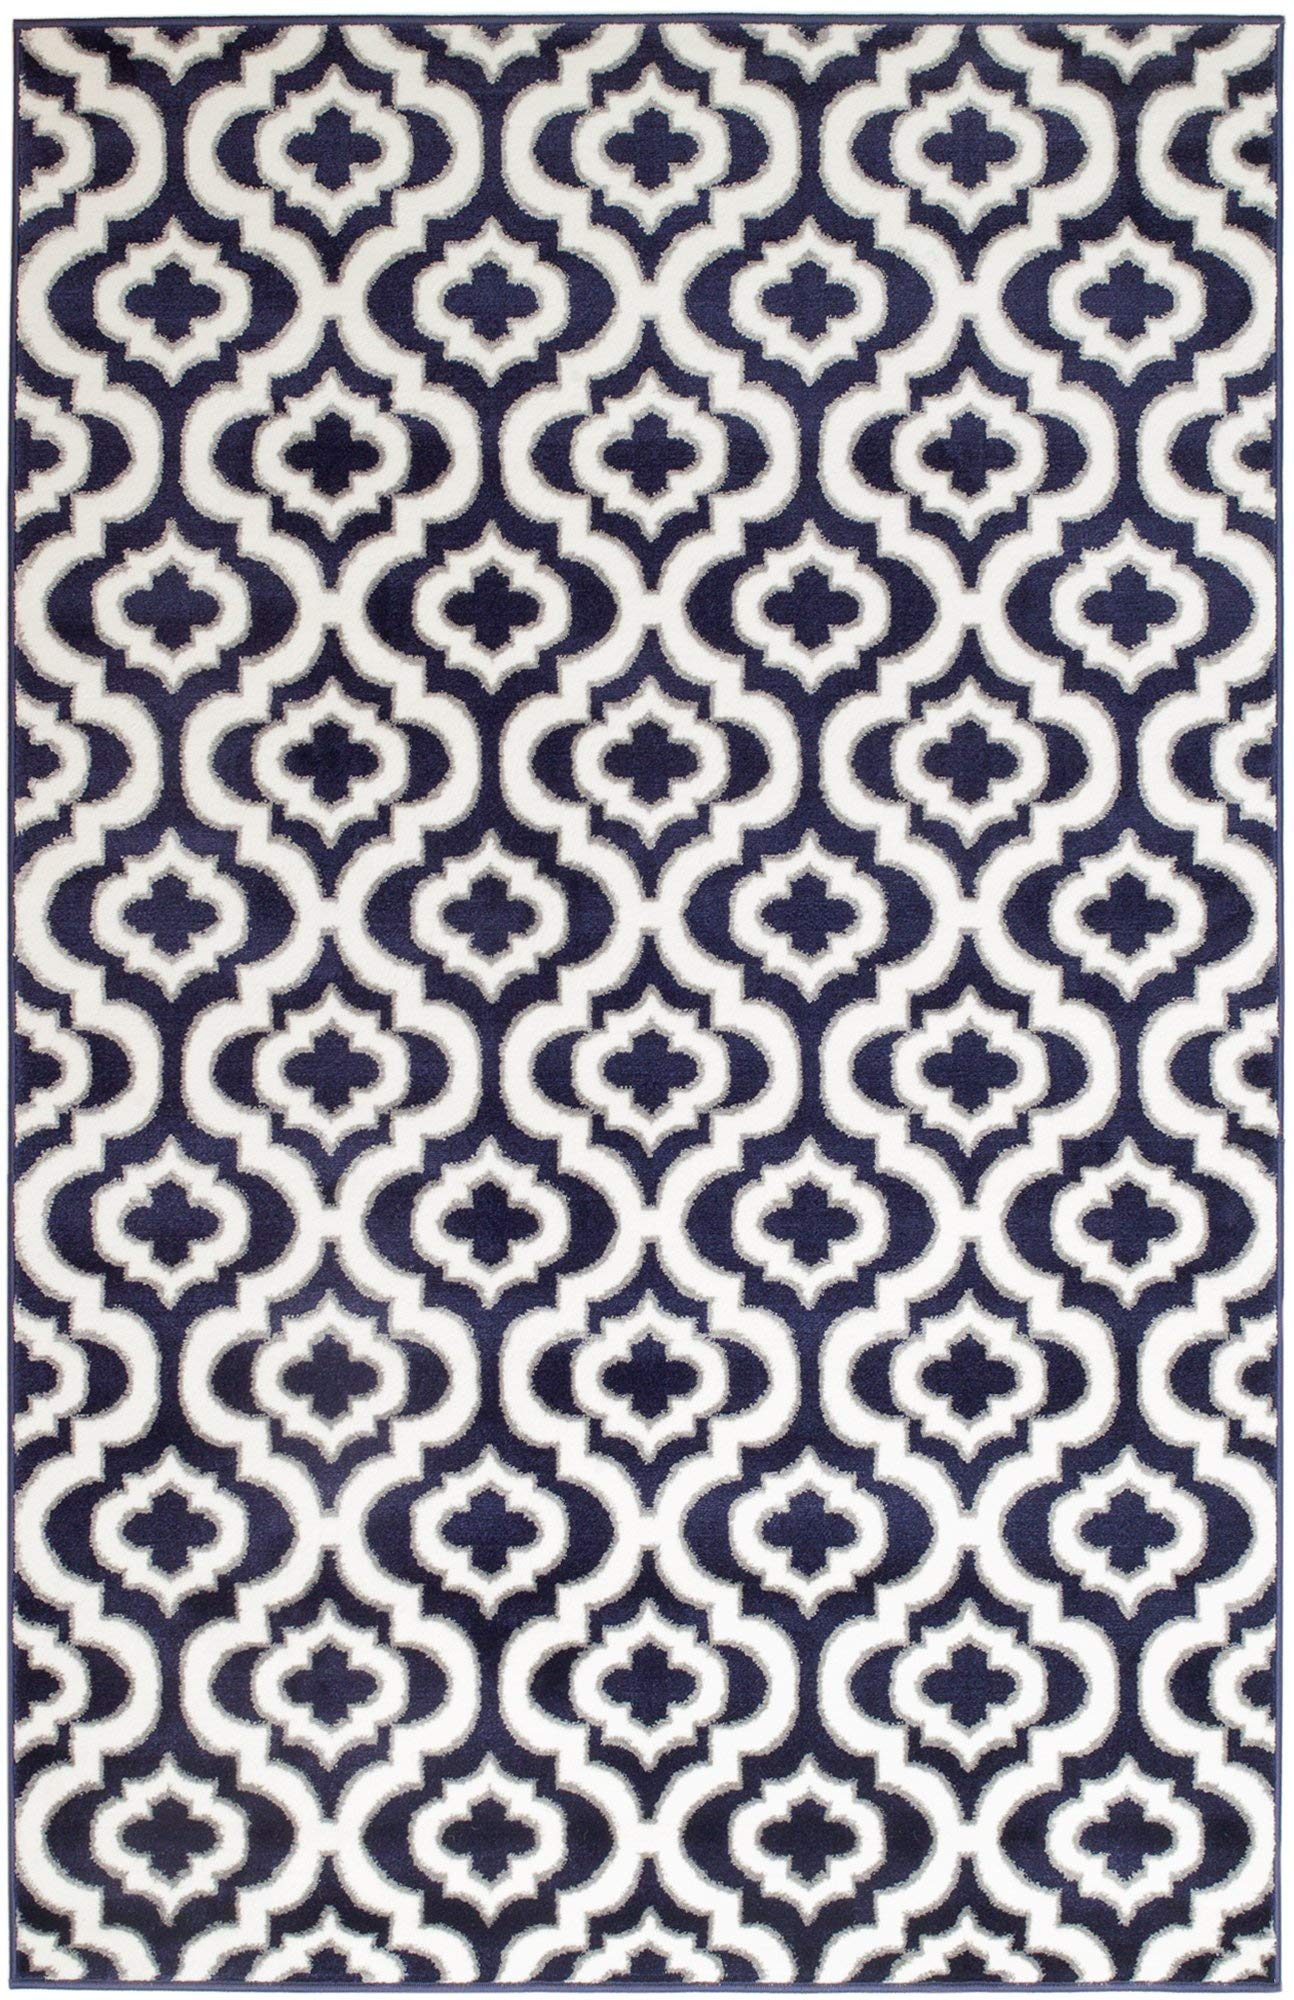 Summit S43 New Navy Blue Morrocan Trellis Area Rug Modern Abstract Rug,(22 INCH X 35 INCH Scatter Door MAT Size)